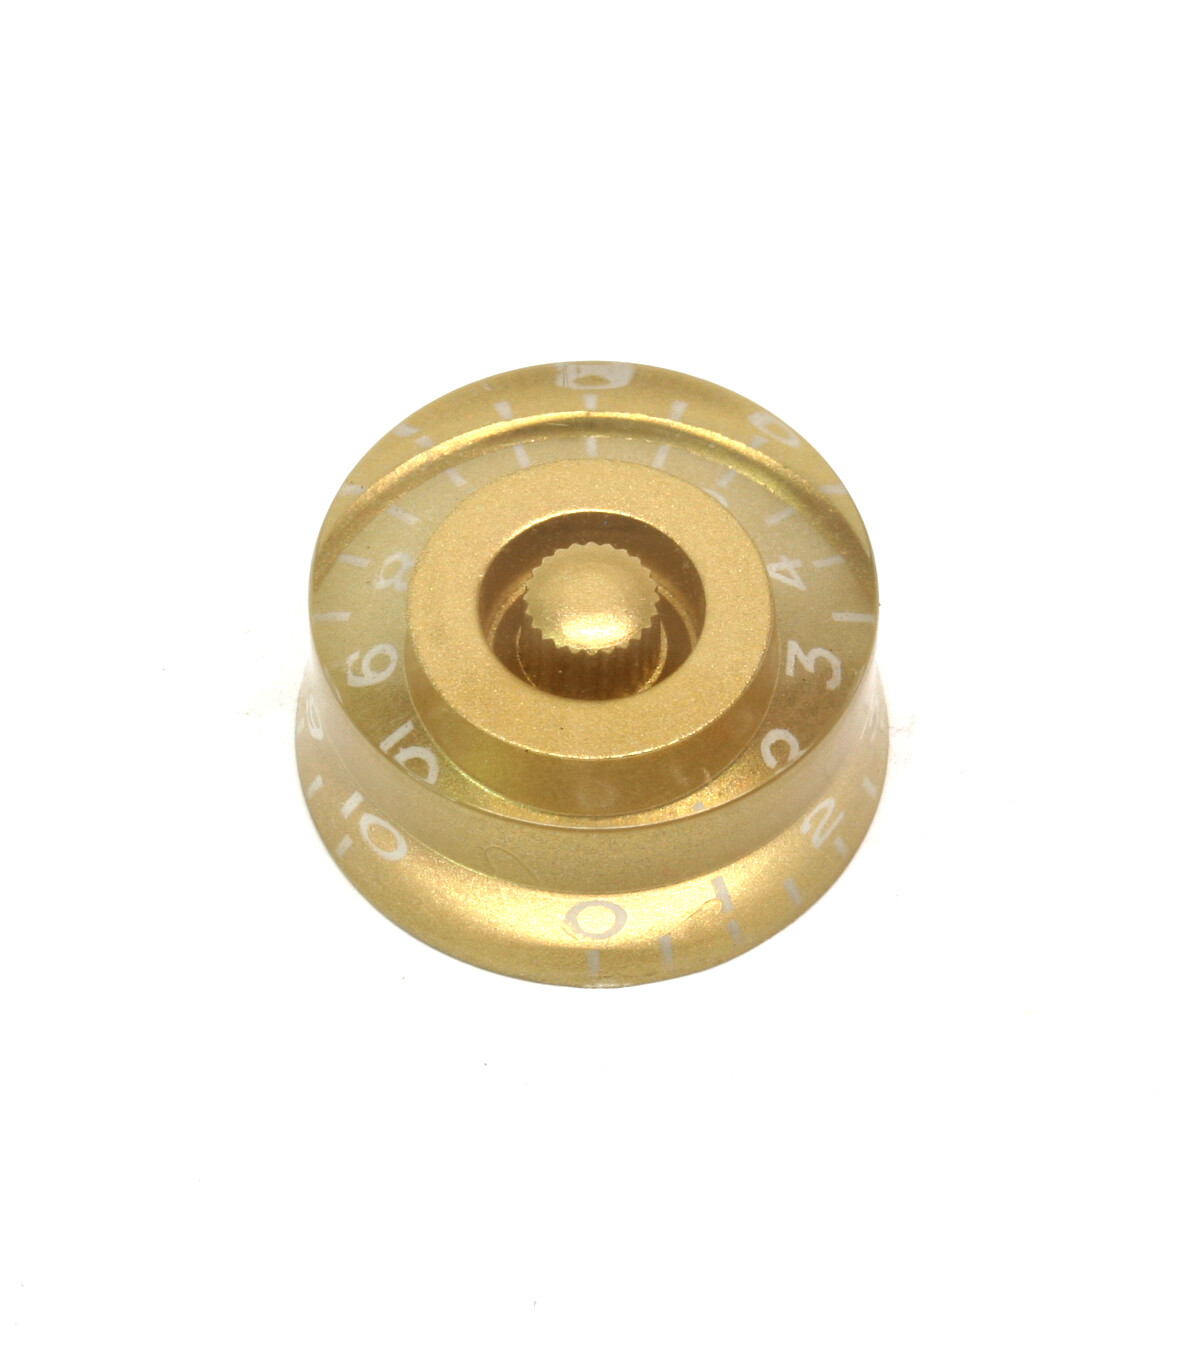 Light Gold Speed knobs vintage style numbers, fits USA split shaft pots.